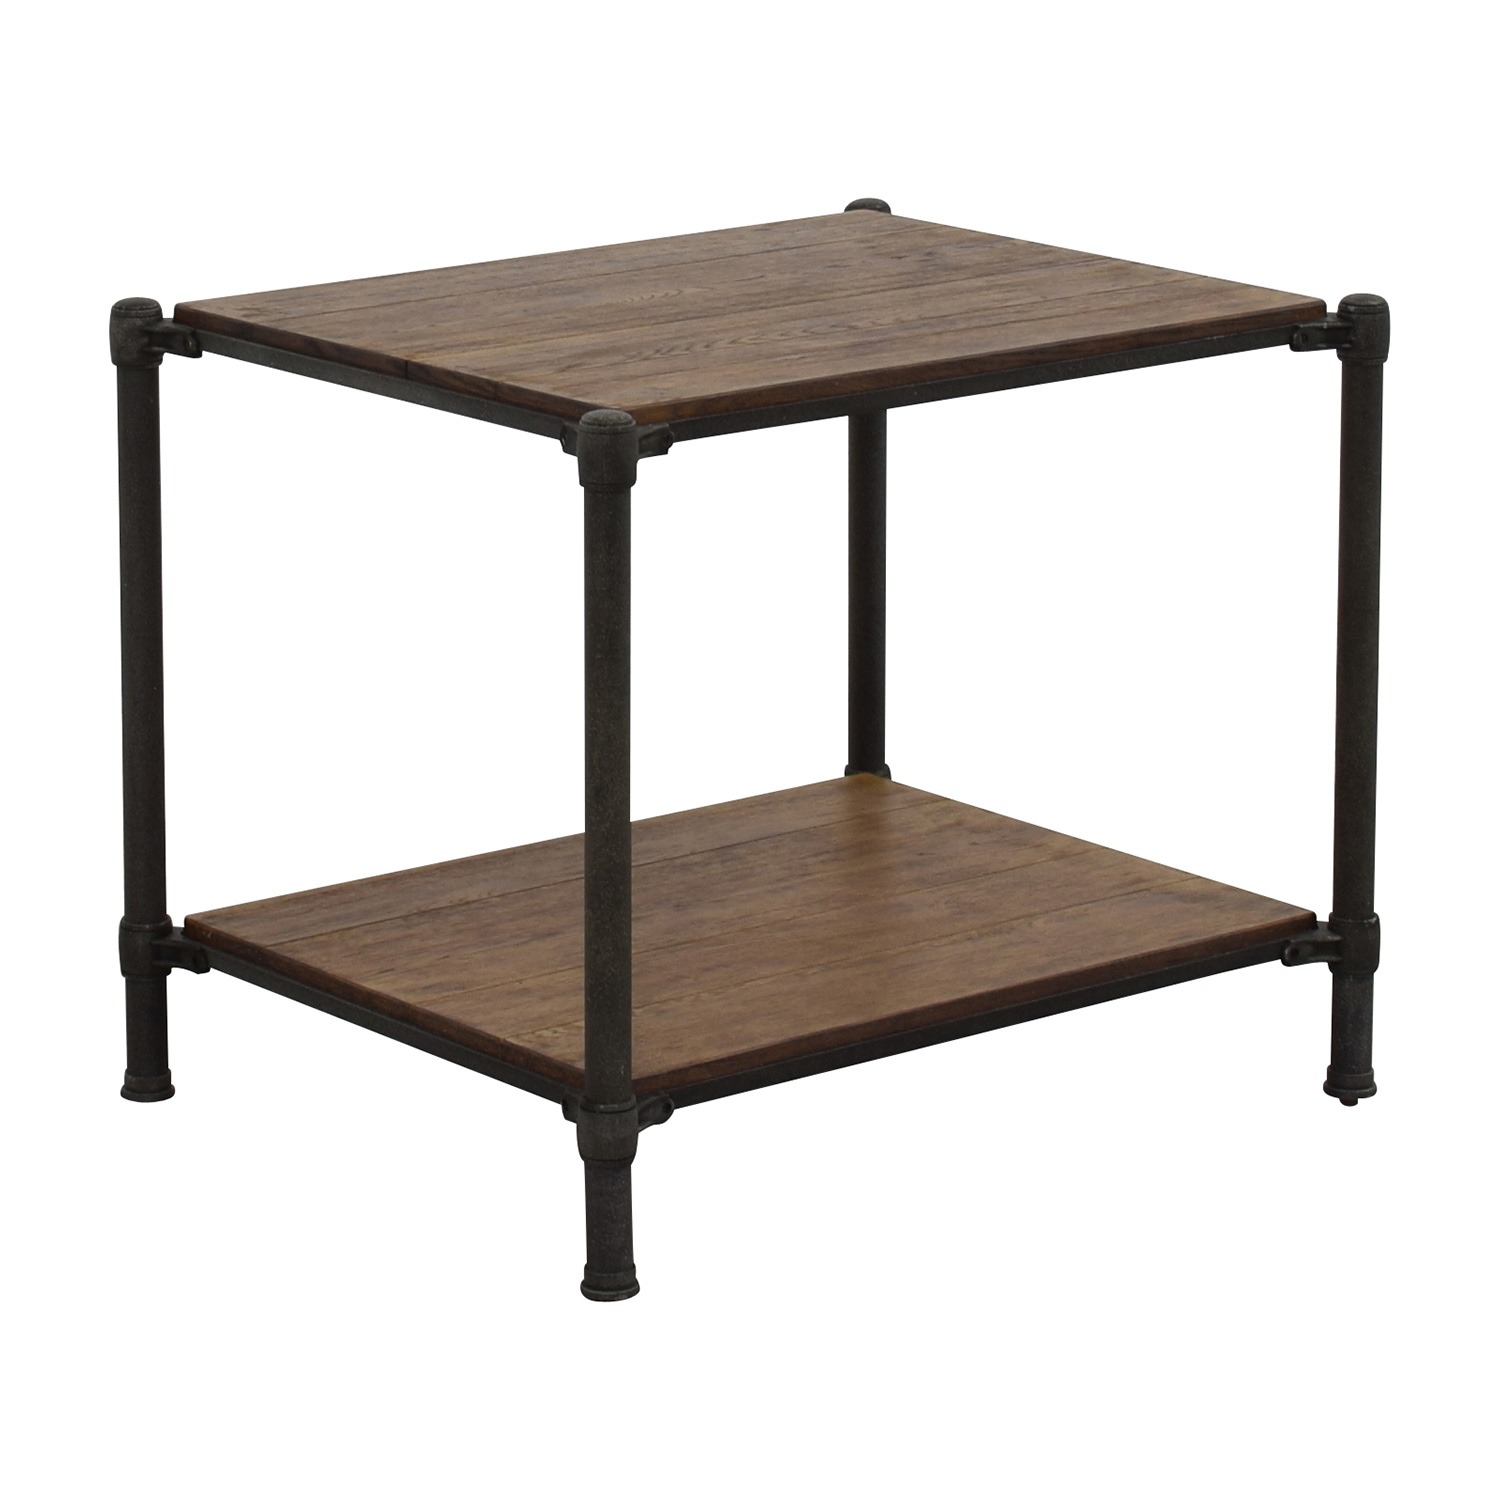 Wood And Metal Side Tables 83 Off Ethan Allen Ethan Allen Metal And Wood End Table